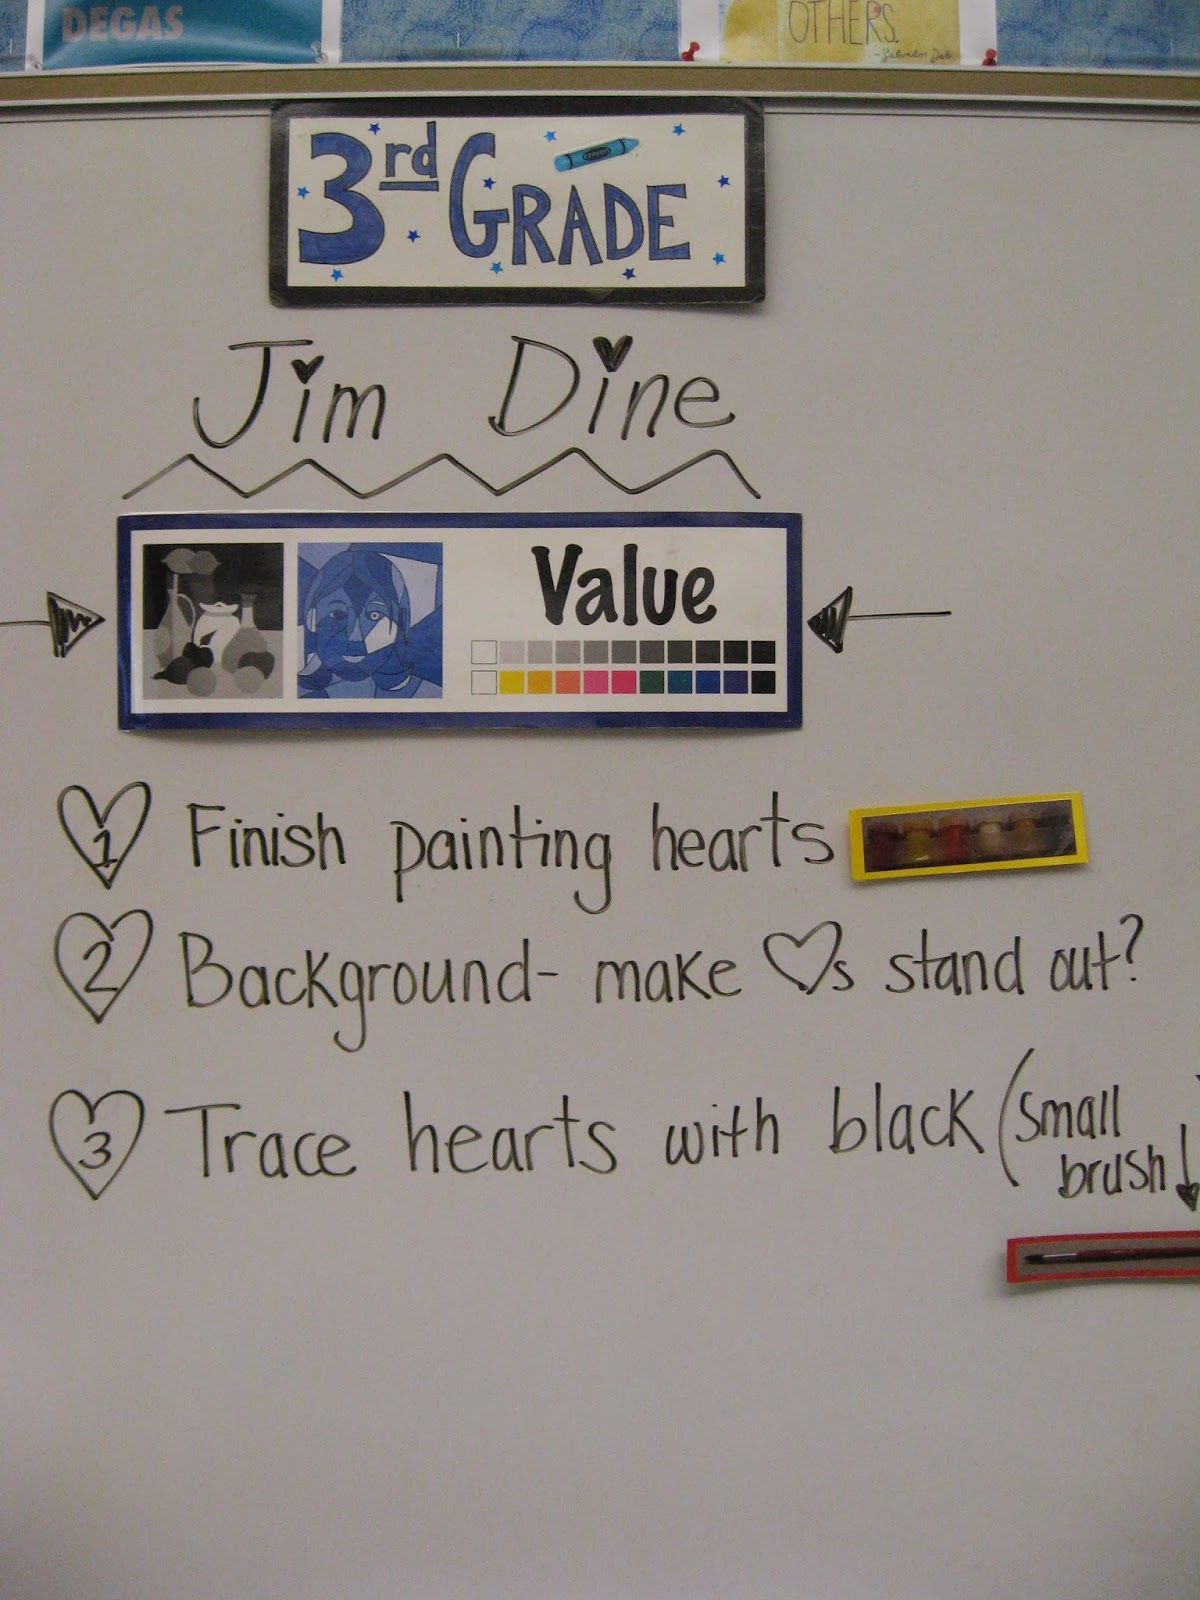 Jamestown Elementary Art Blog Reporting What 3rd Graders Learned About Jim Dine And Value